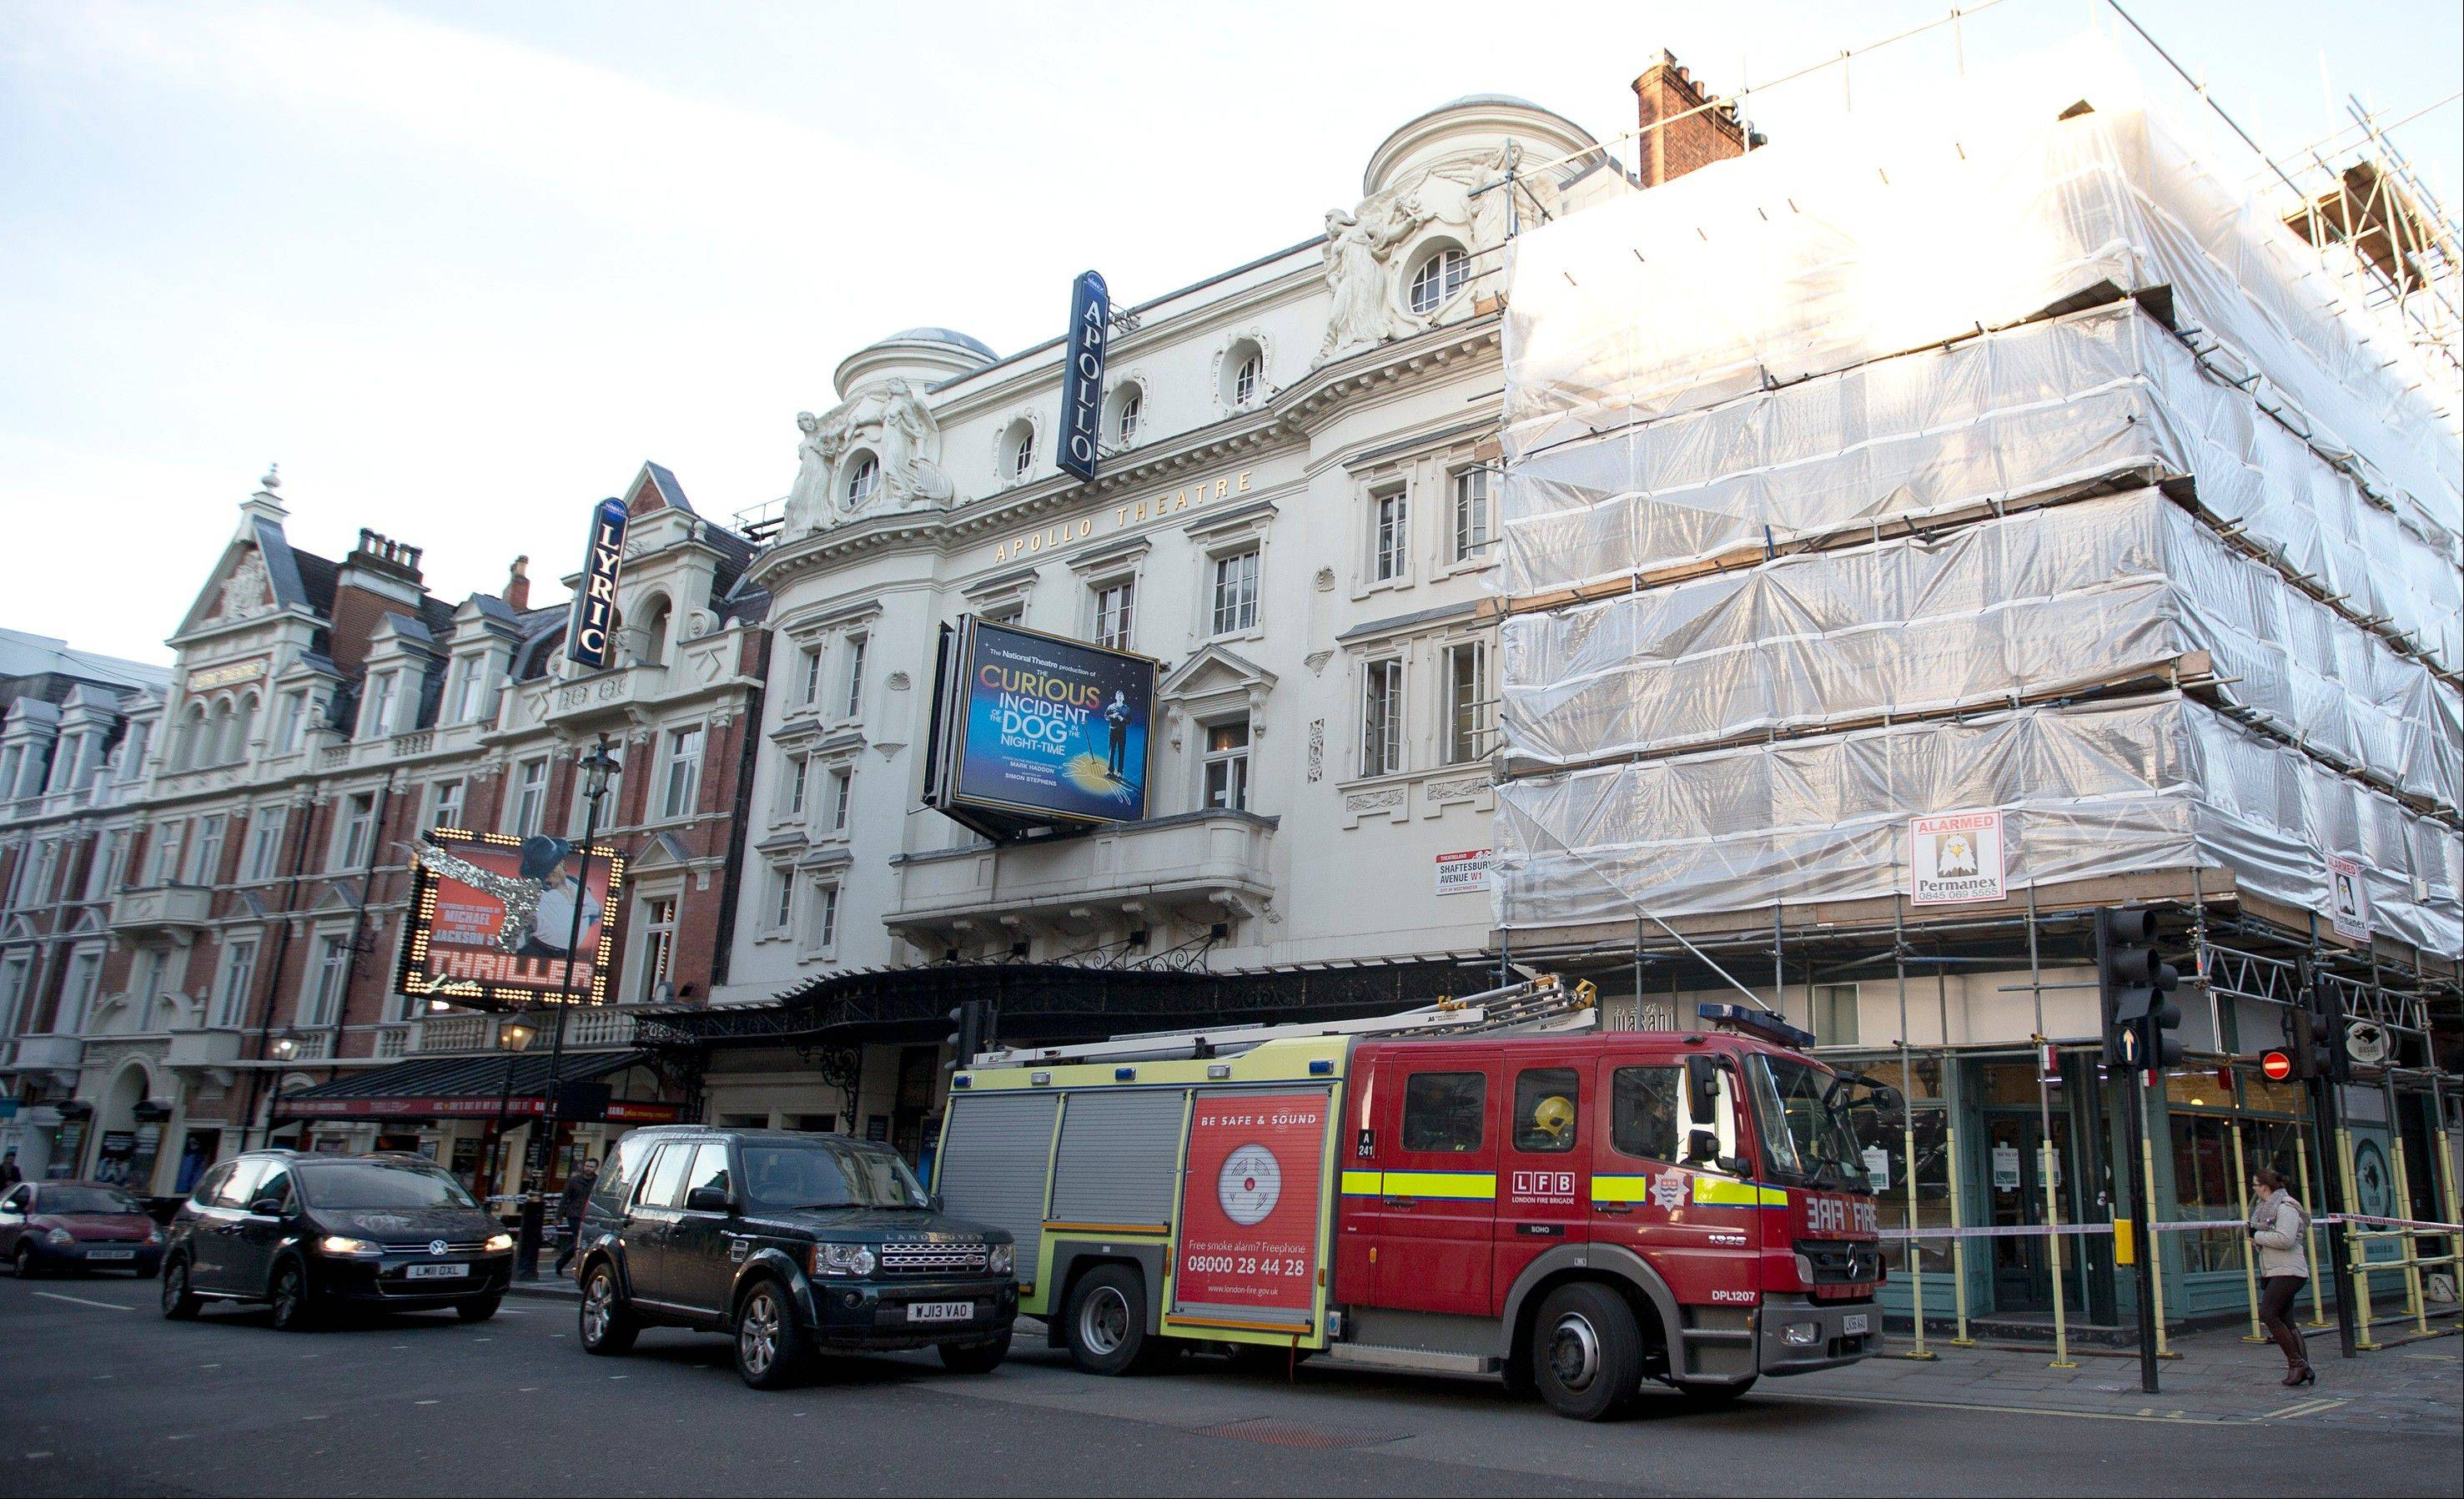 A fire brigade truck waits outside The Apollo Theatre in London, Friday, Dec. 20, 2013. Authorities are carrying out a structural assessment at the Apollo Theatre after the partial collapse of its ceiling injured more than 75 people in the packed auditorium.